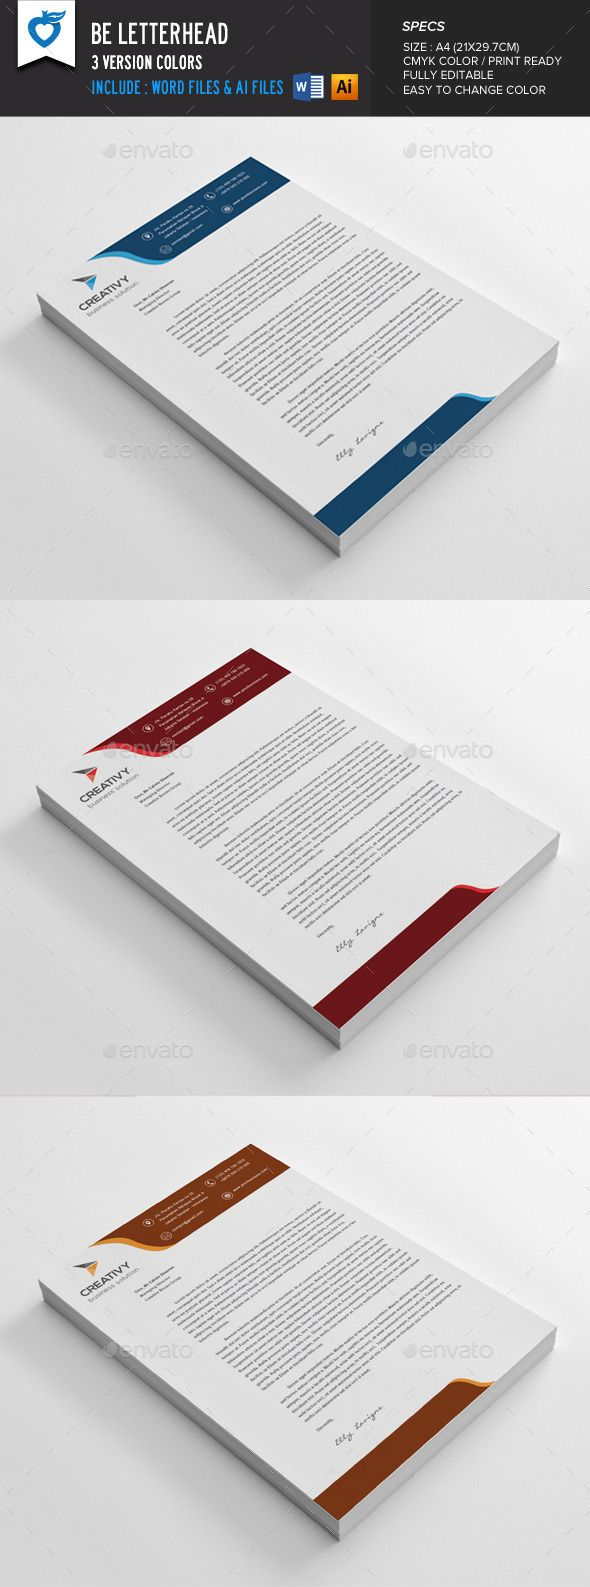 Book Cover Template Word Free Download ~ 105 best letterhead template images on pinterest letterhead